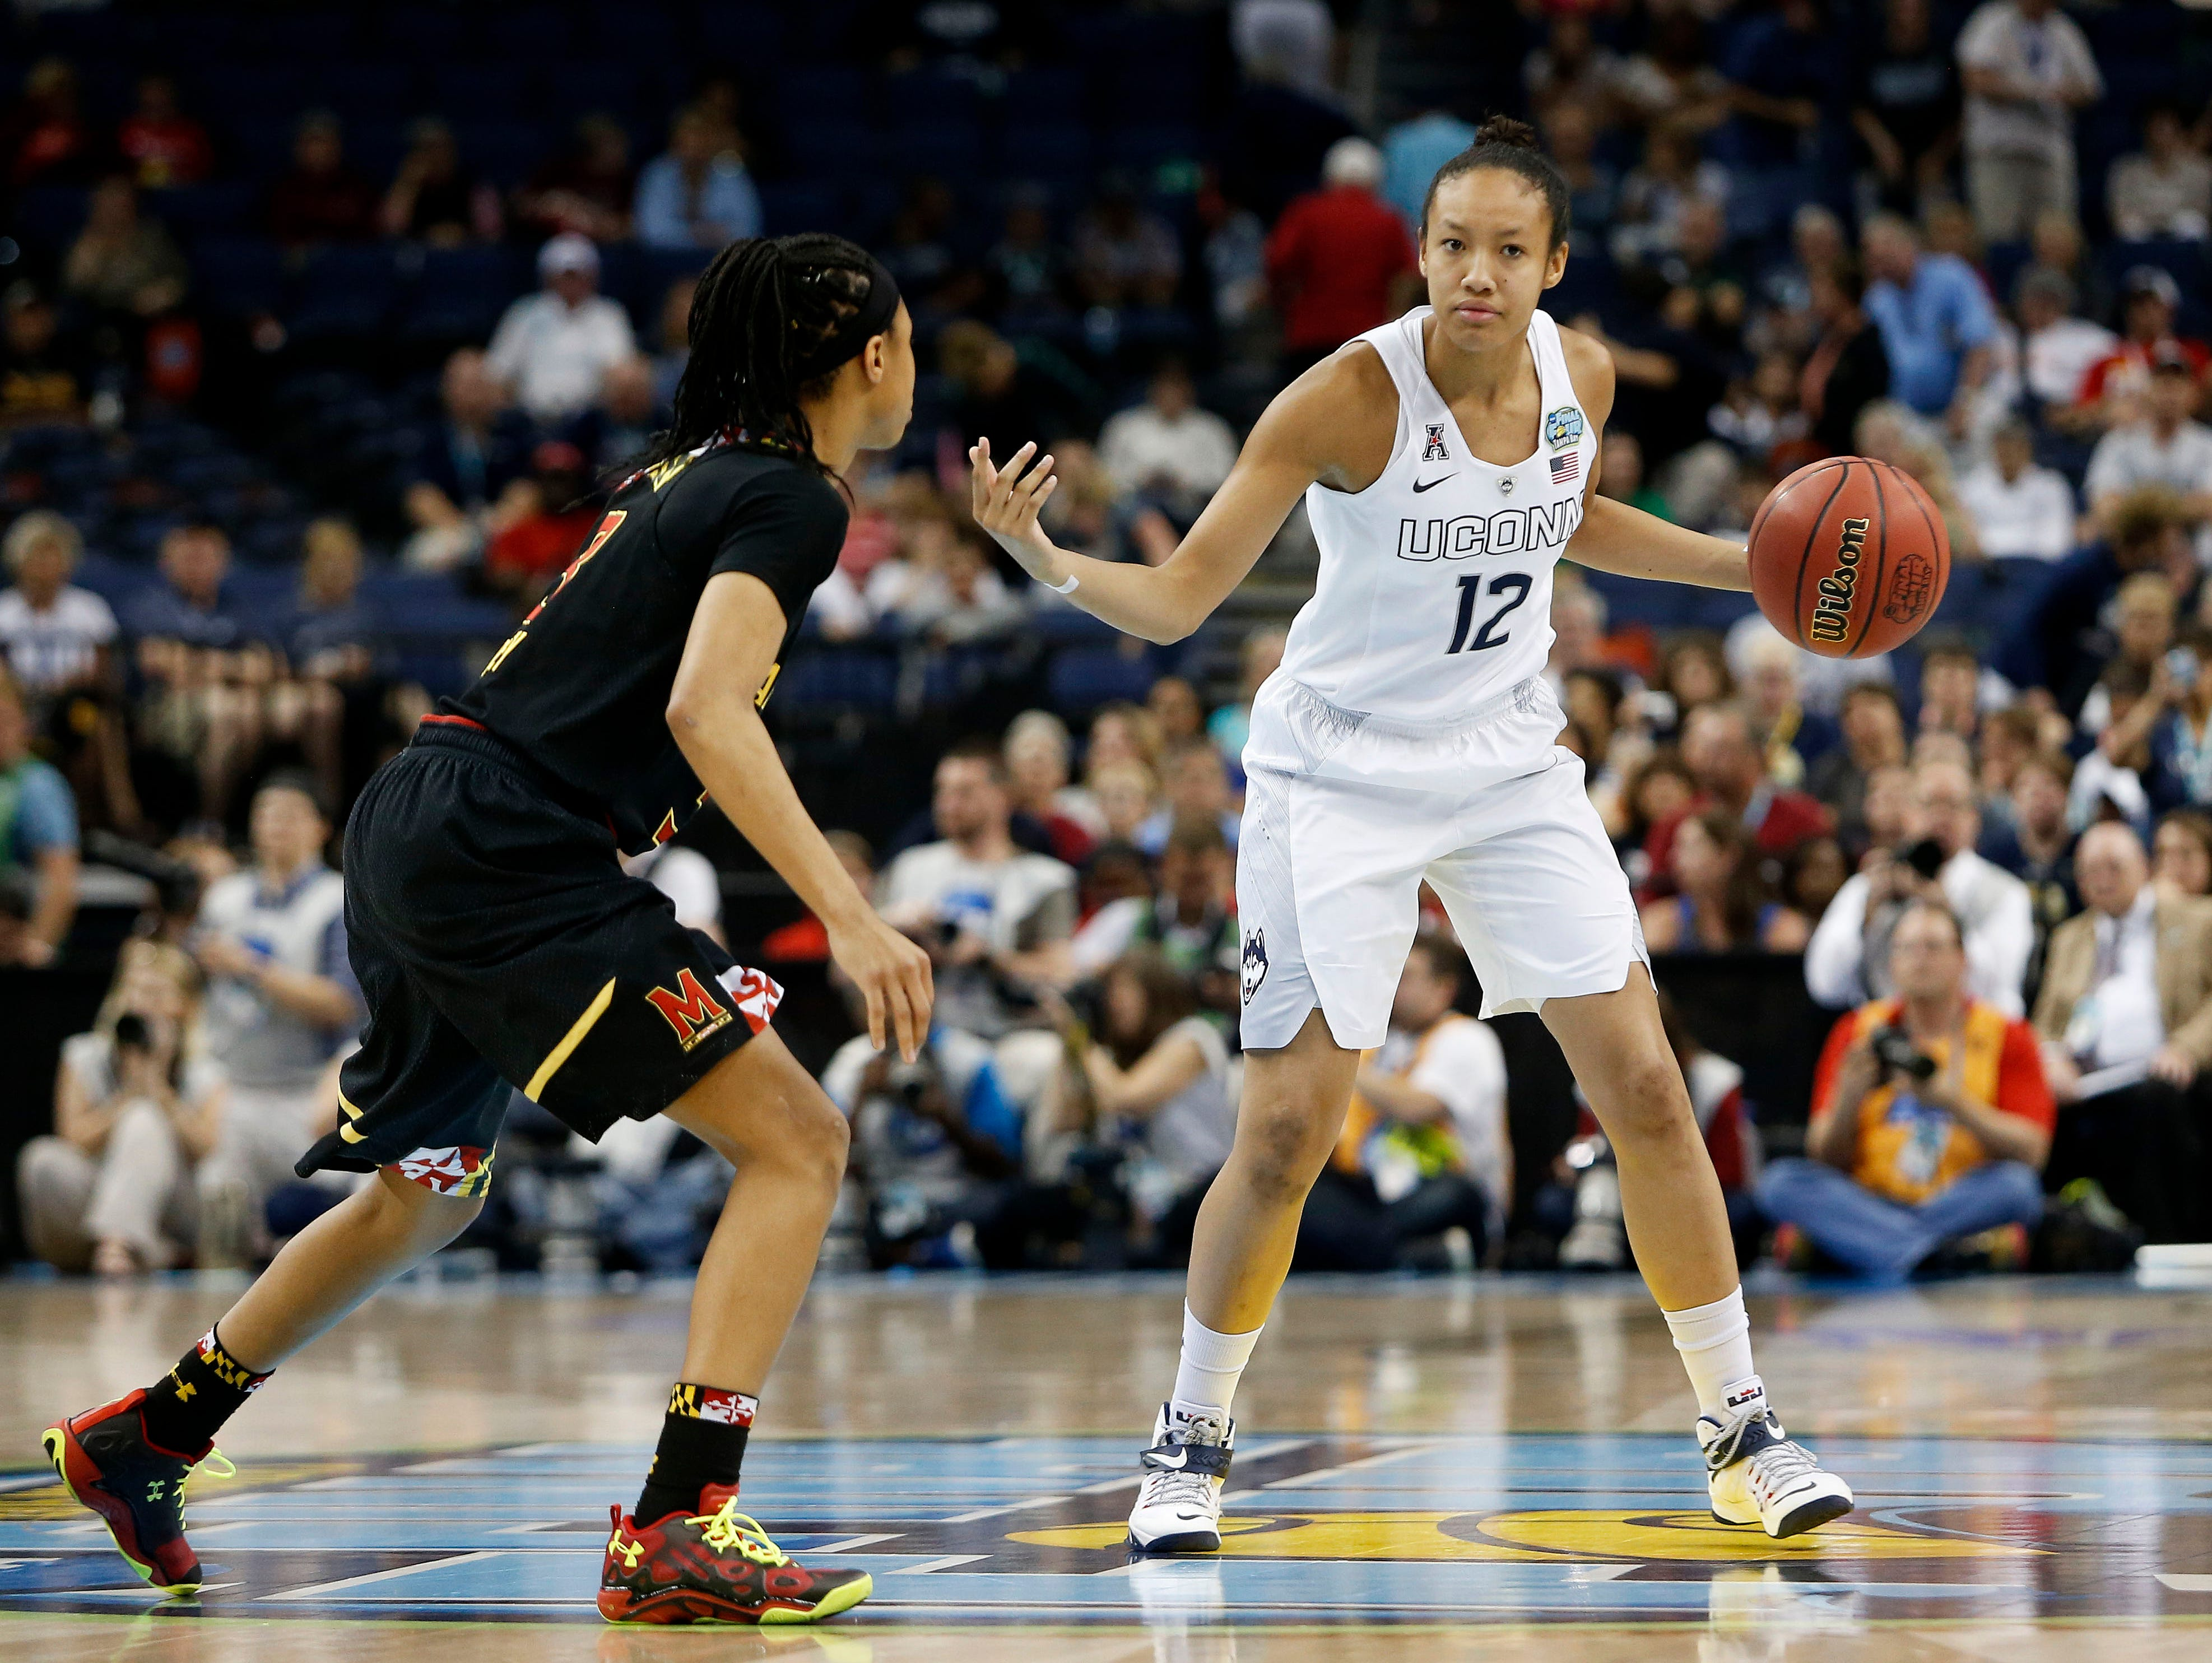 UConn's Saniya Chong, right, of Ossining, is shown here against Maryland in an NCAA women's national semifinal at Amalie Arena on April 5, 2015, in Tampa, Florida,.